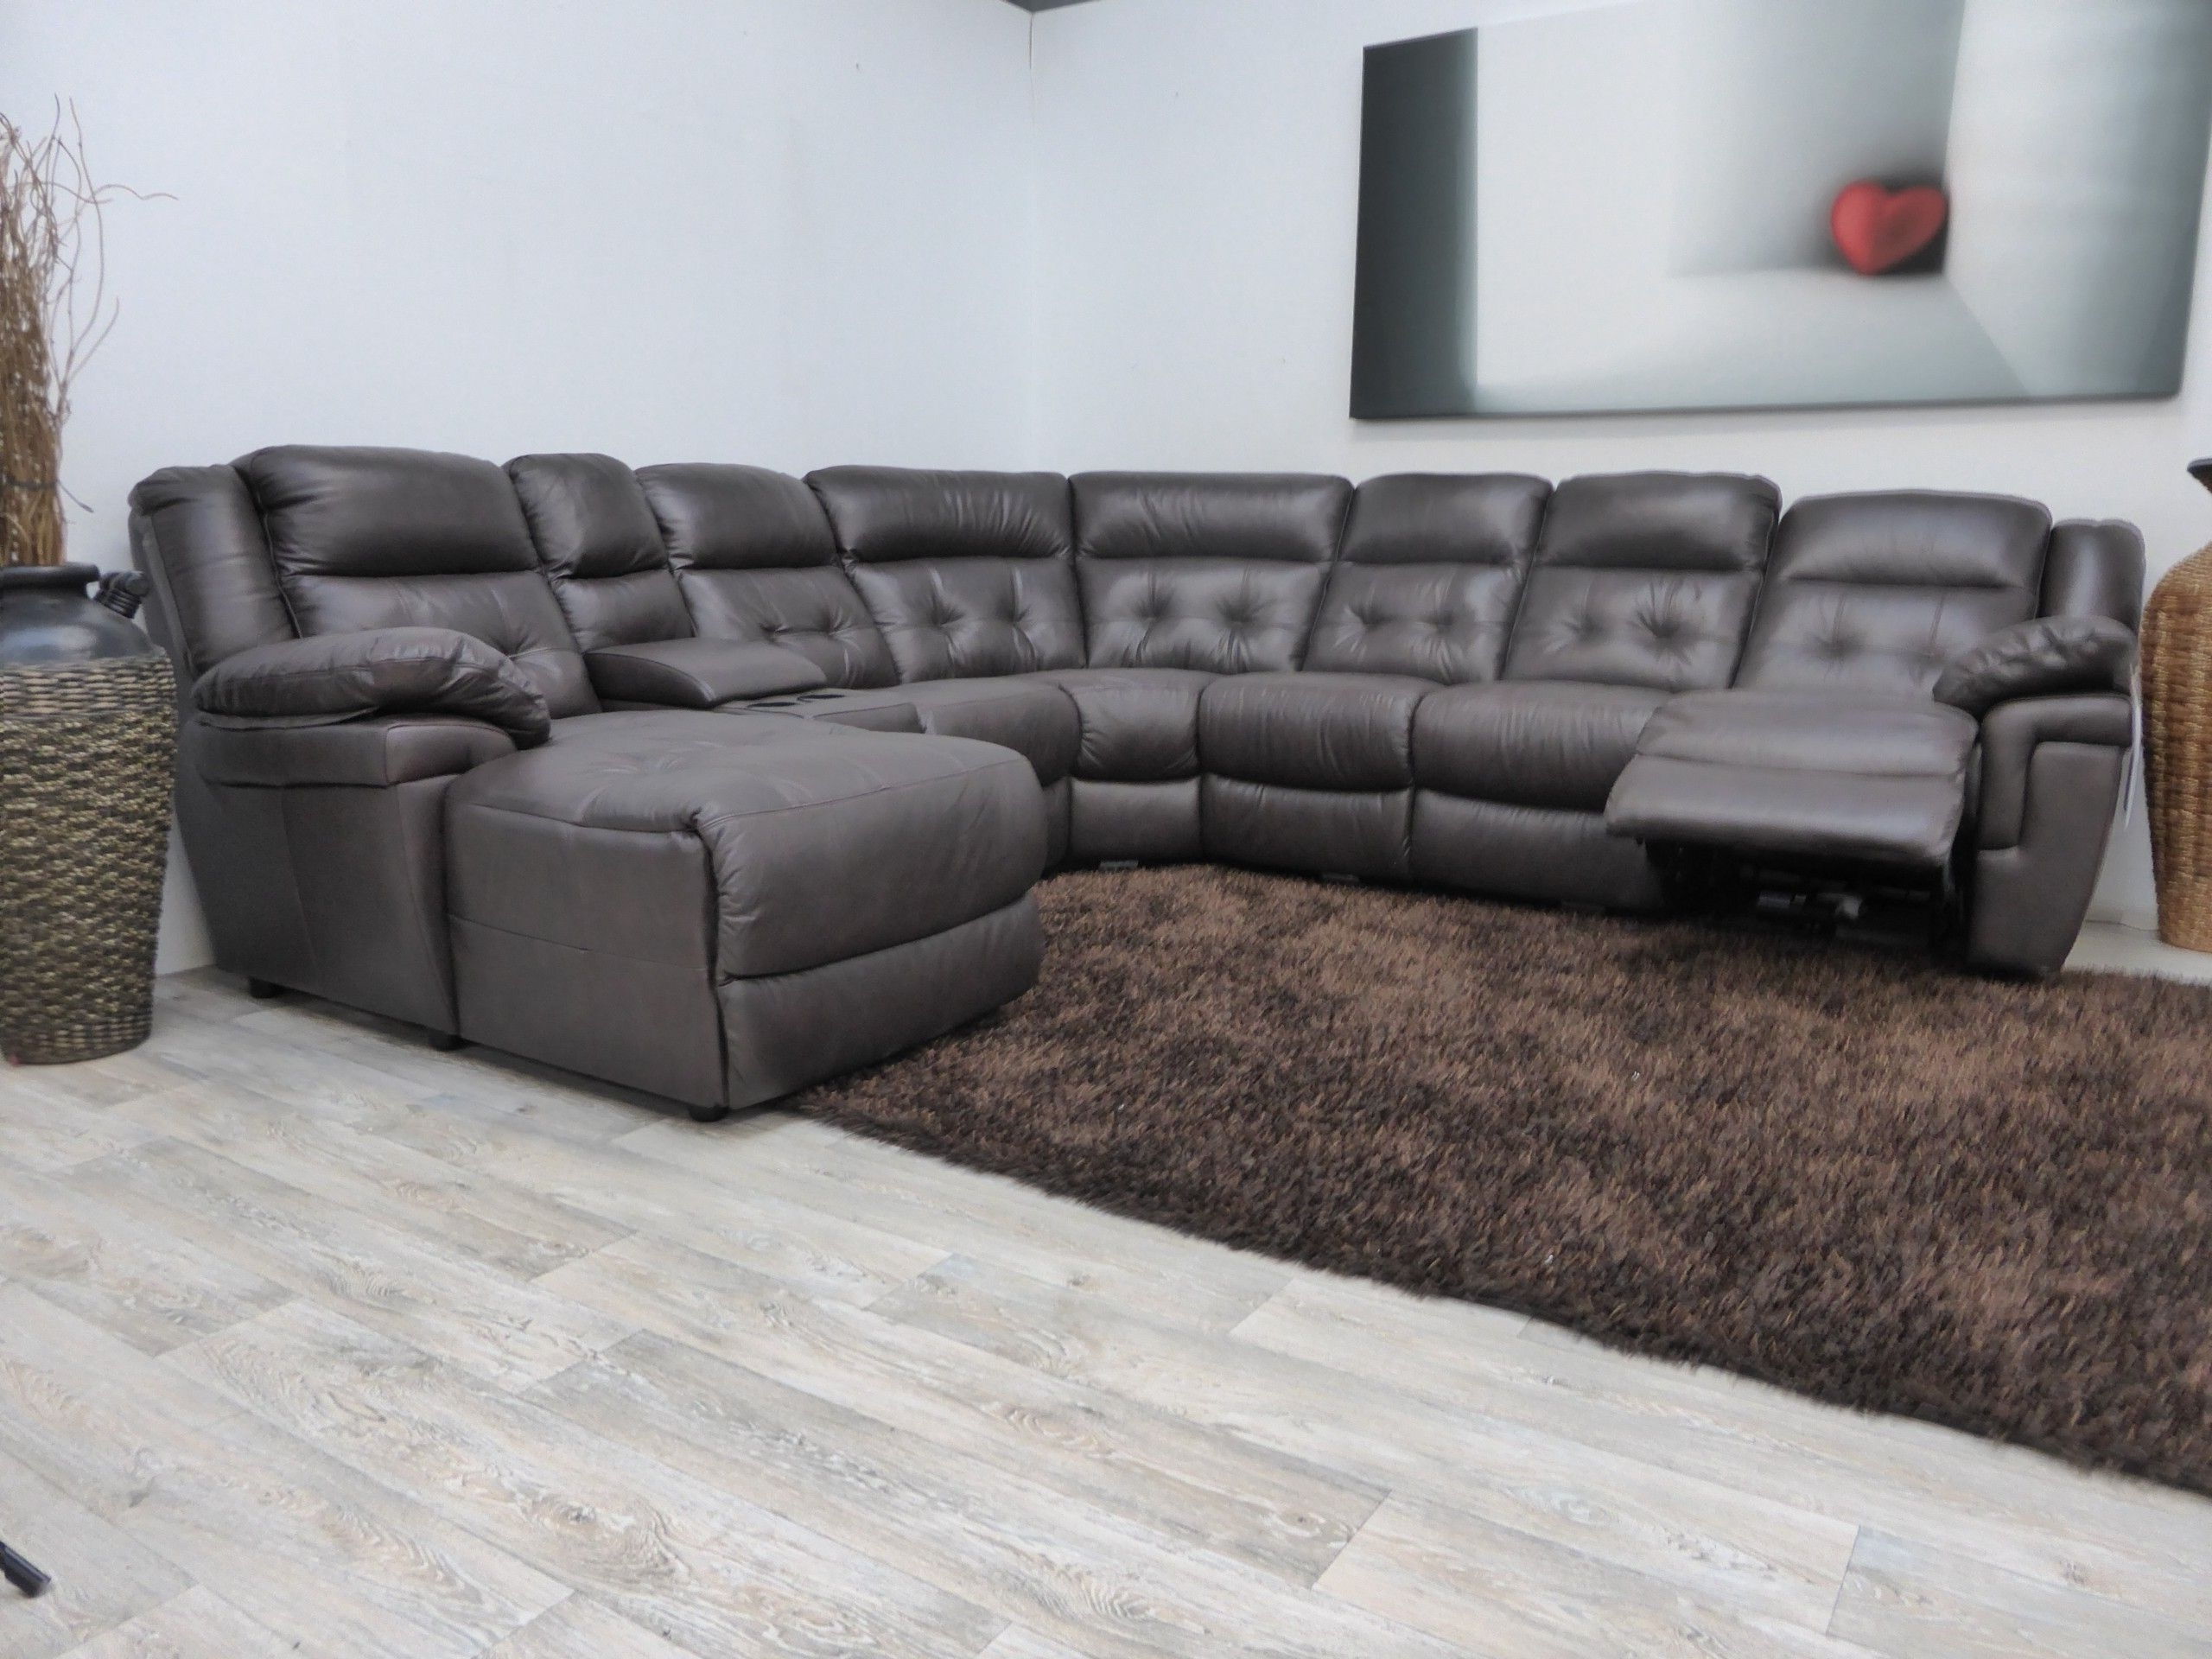 Well Liked L Shaped Sofa Design With Black Upholstery Faux Leather Sofa Pertaining To Queens Ny Sectional Sofas (View 12 of 15)